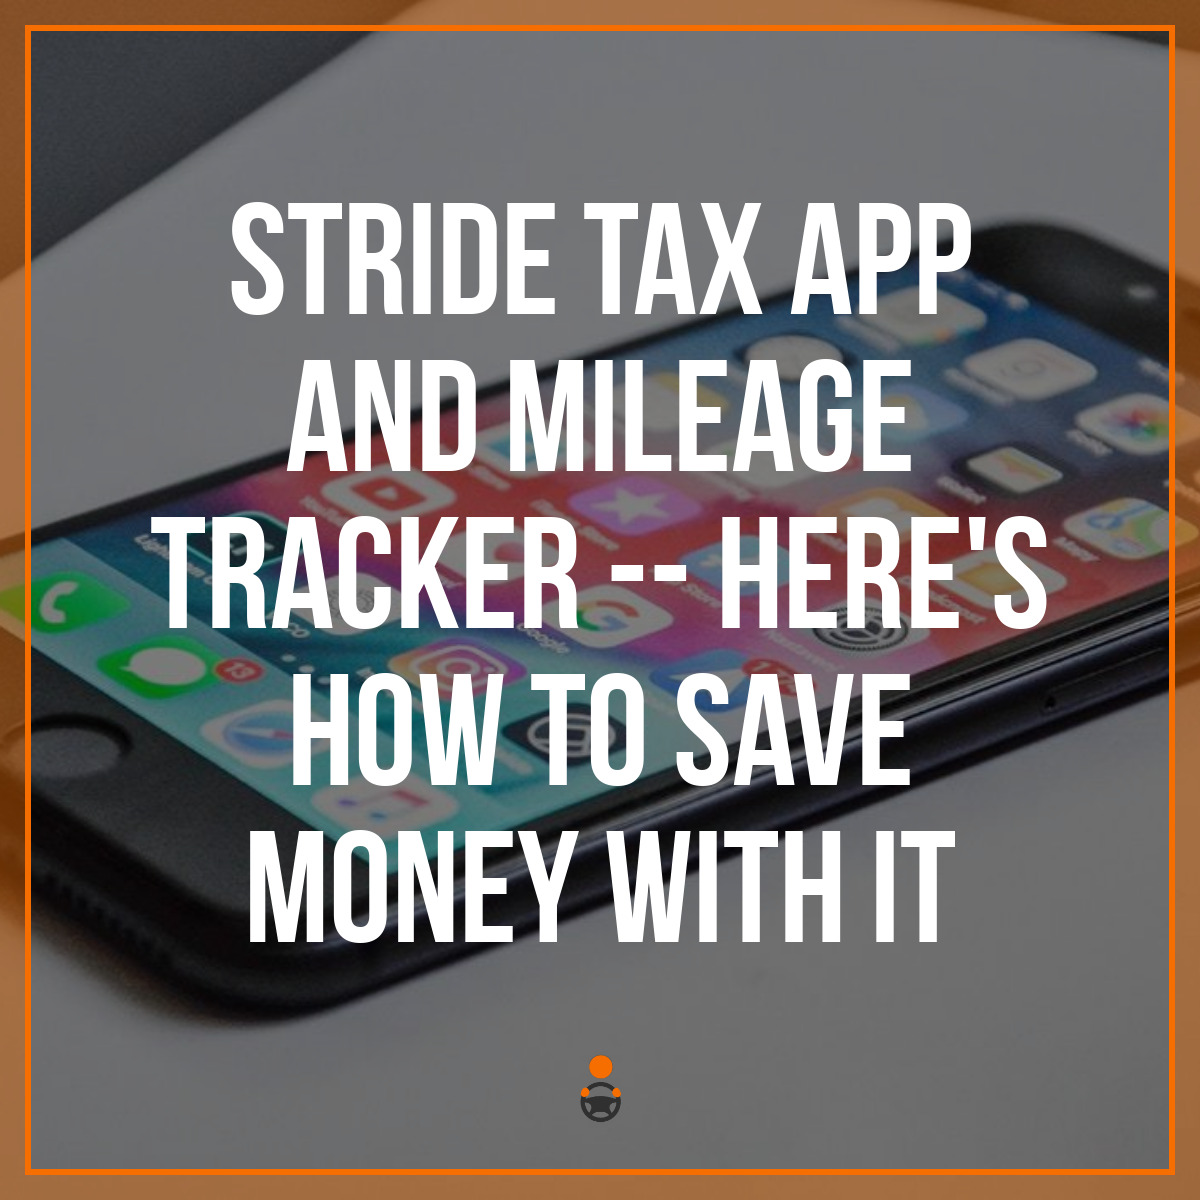 Stride Tax App and Mileage Tracker — Here's How to Save Money With It